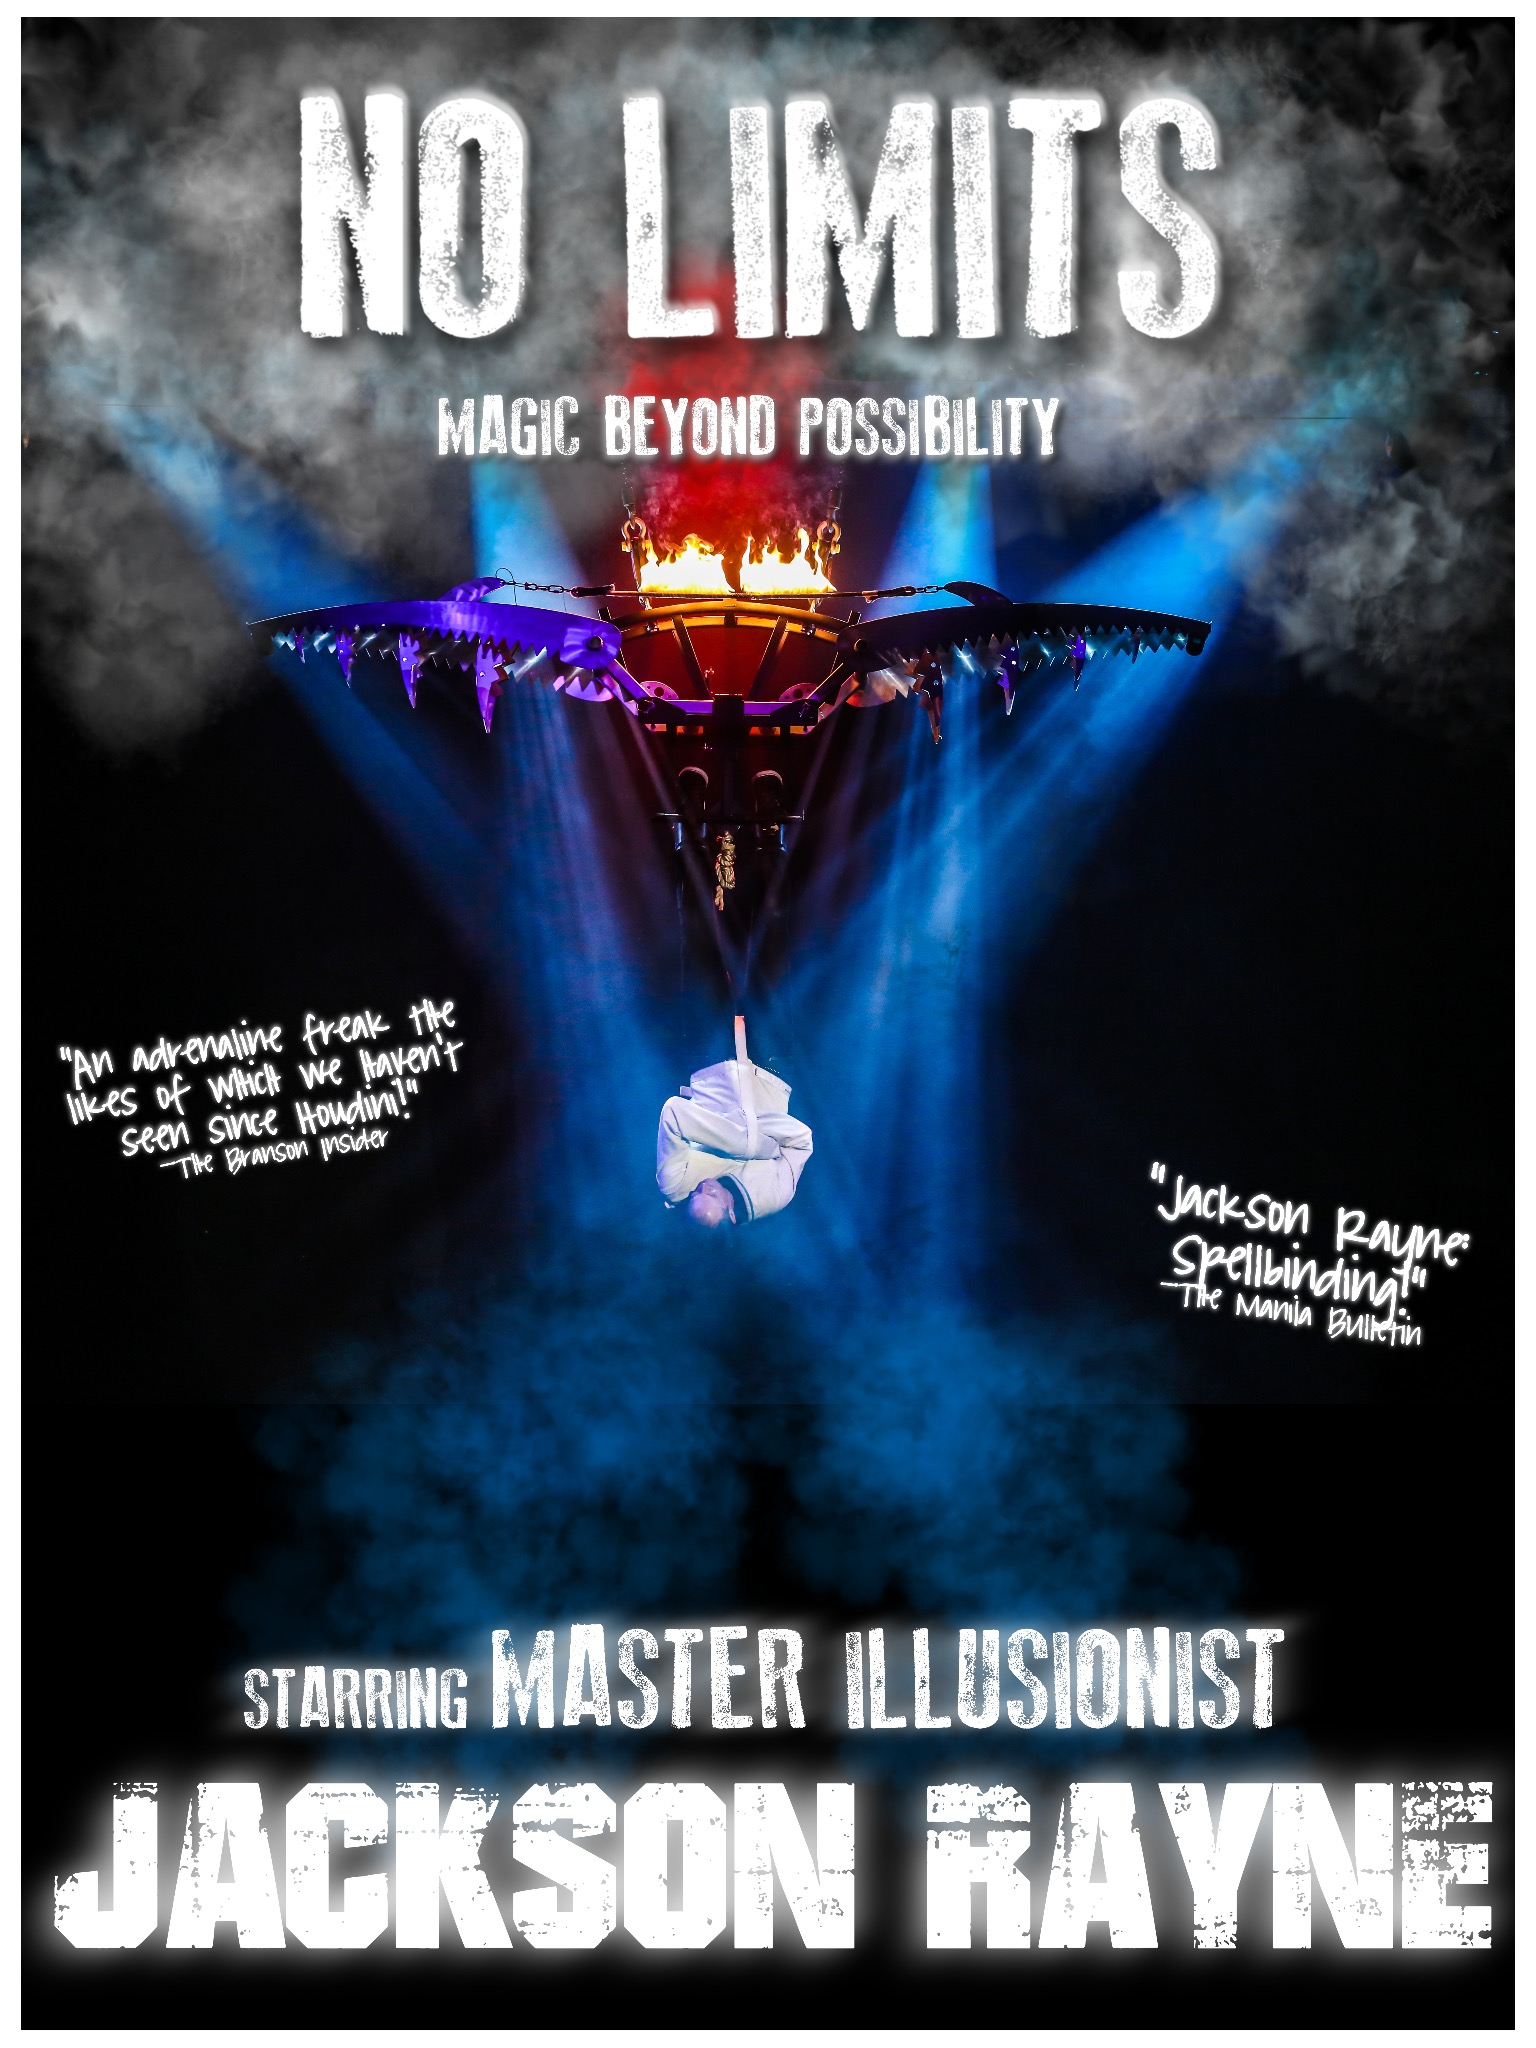 No Limits: Magic Beyond Possibility Official Show Poster